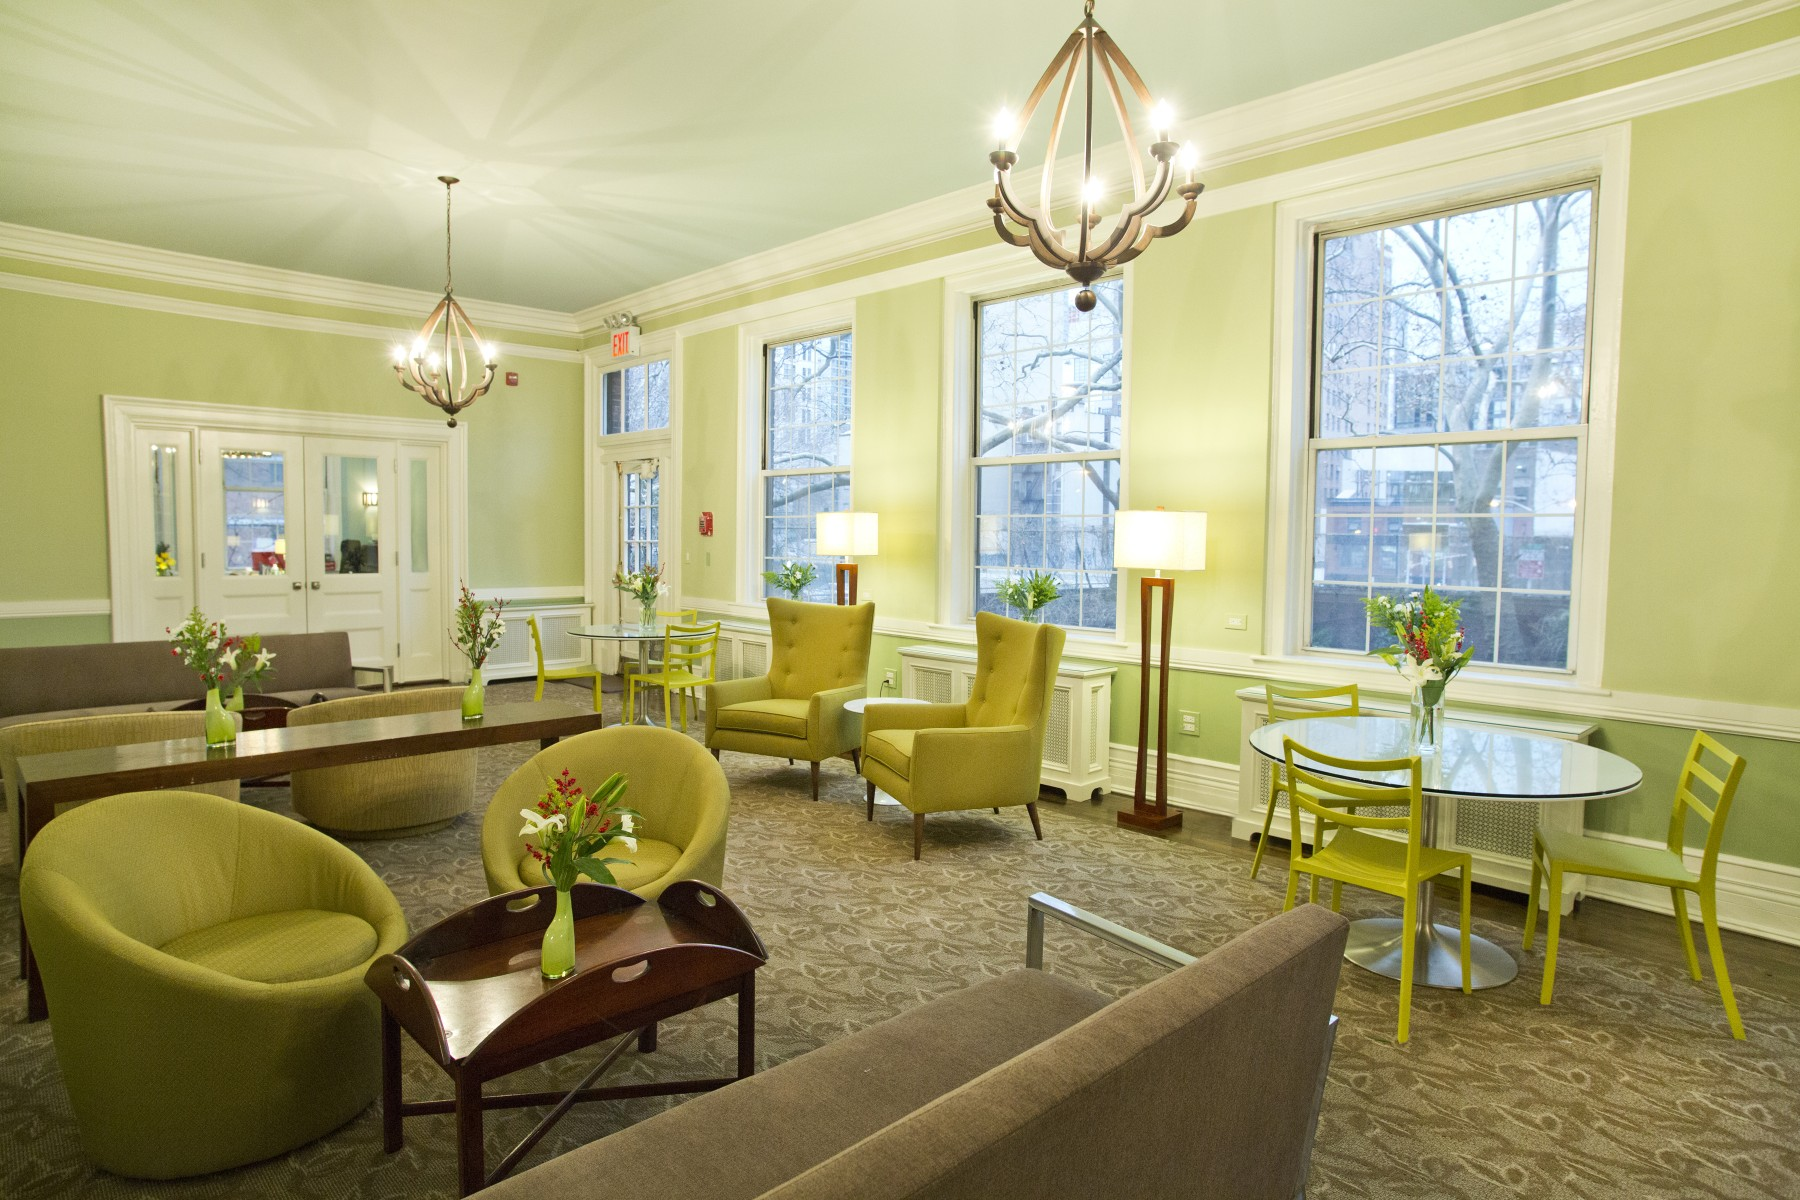 Rooms: Go Inside The Webster Apartments, One Of The City's Few